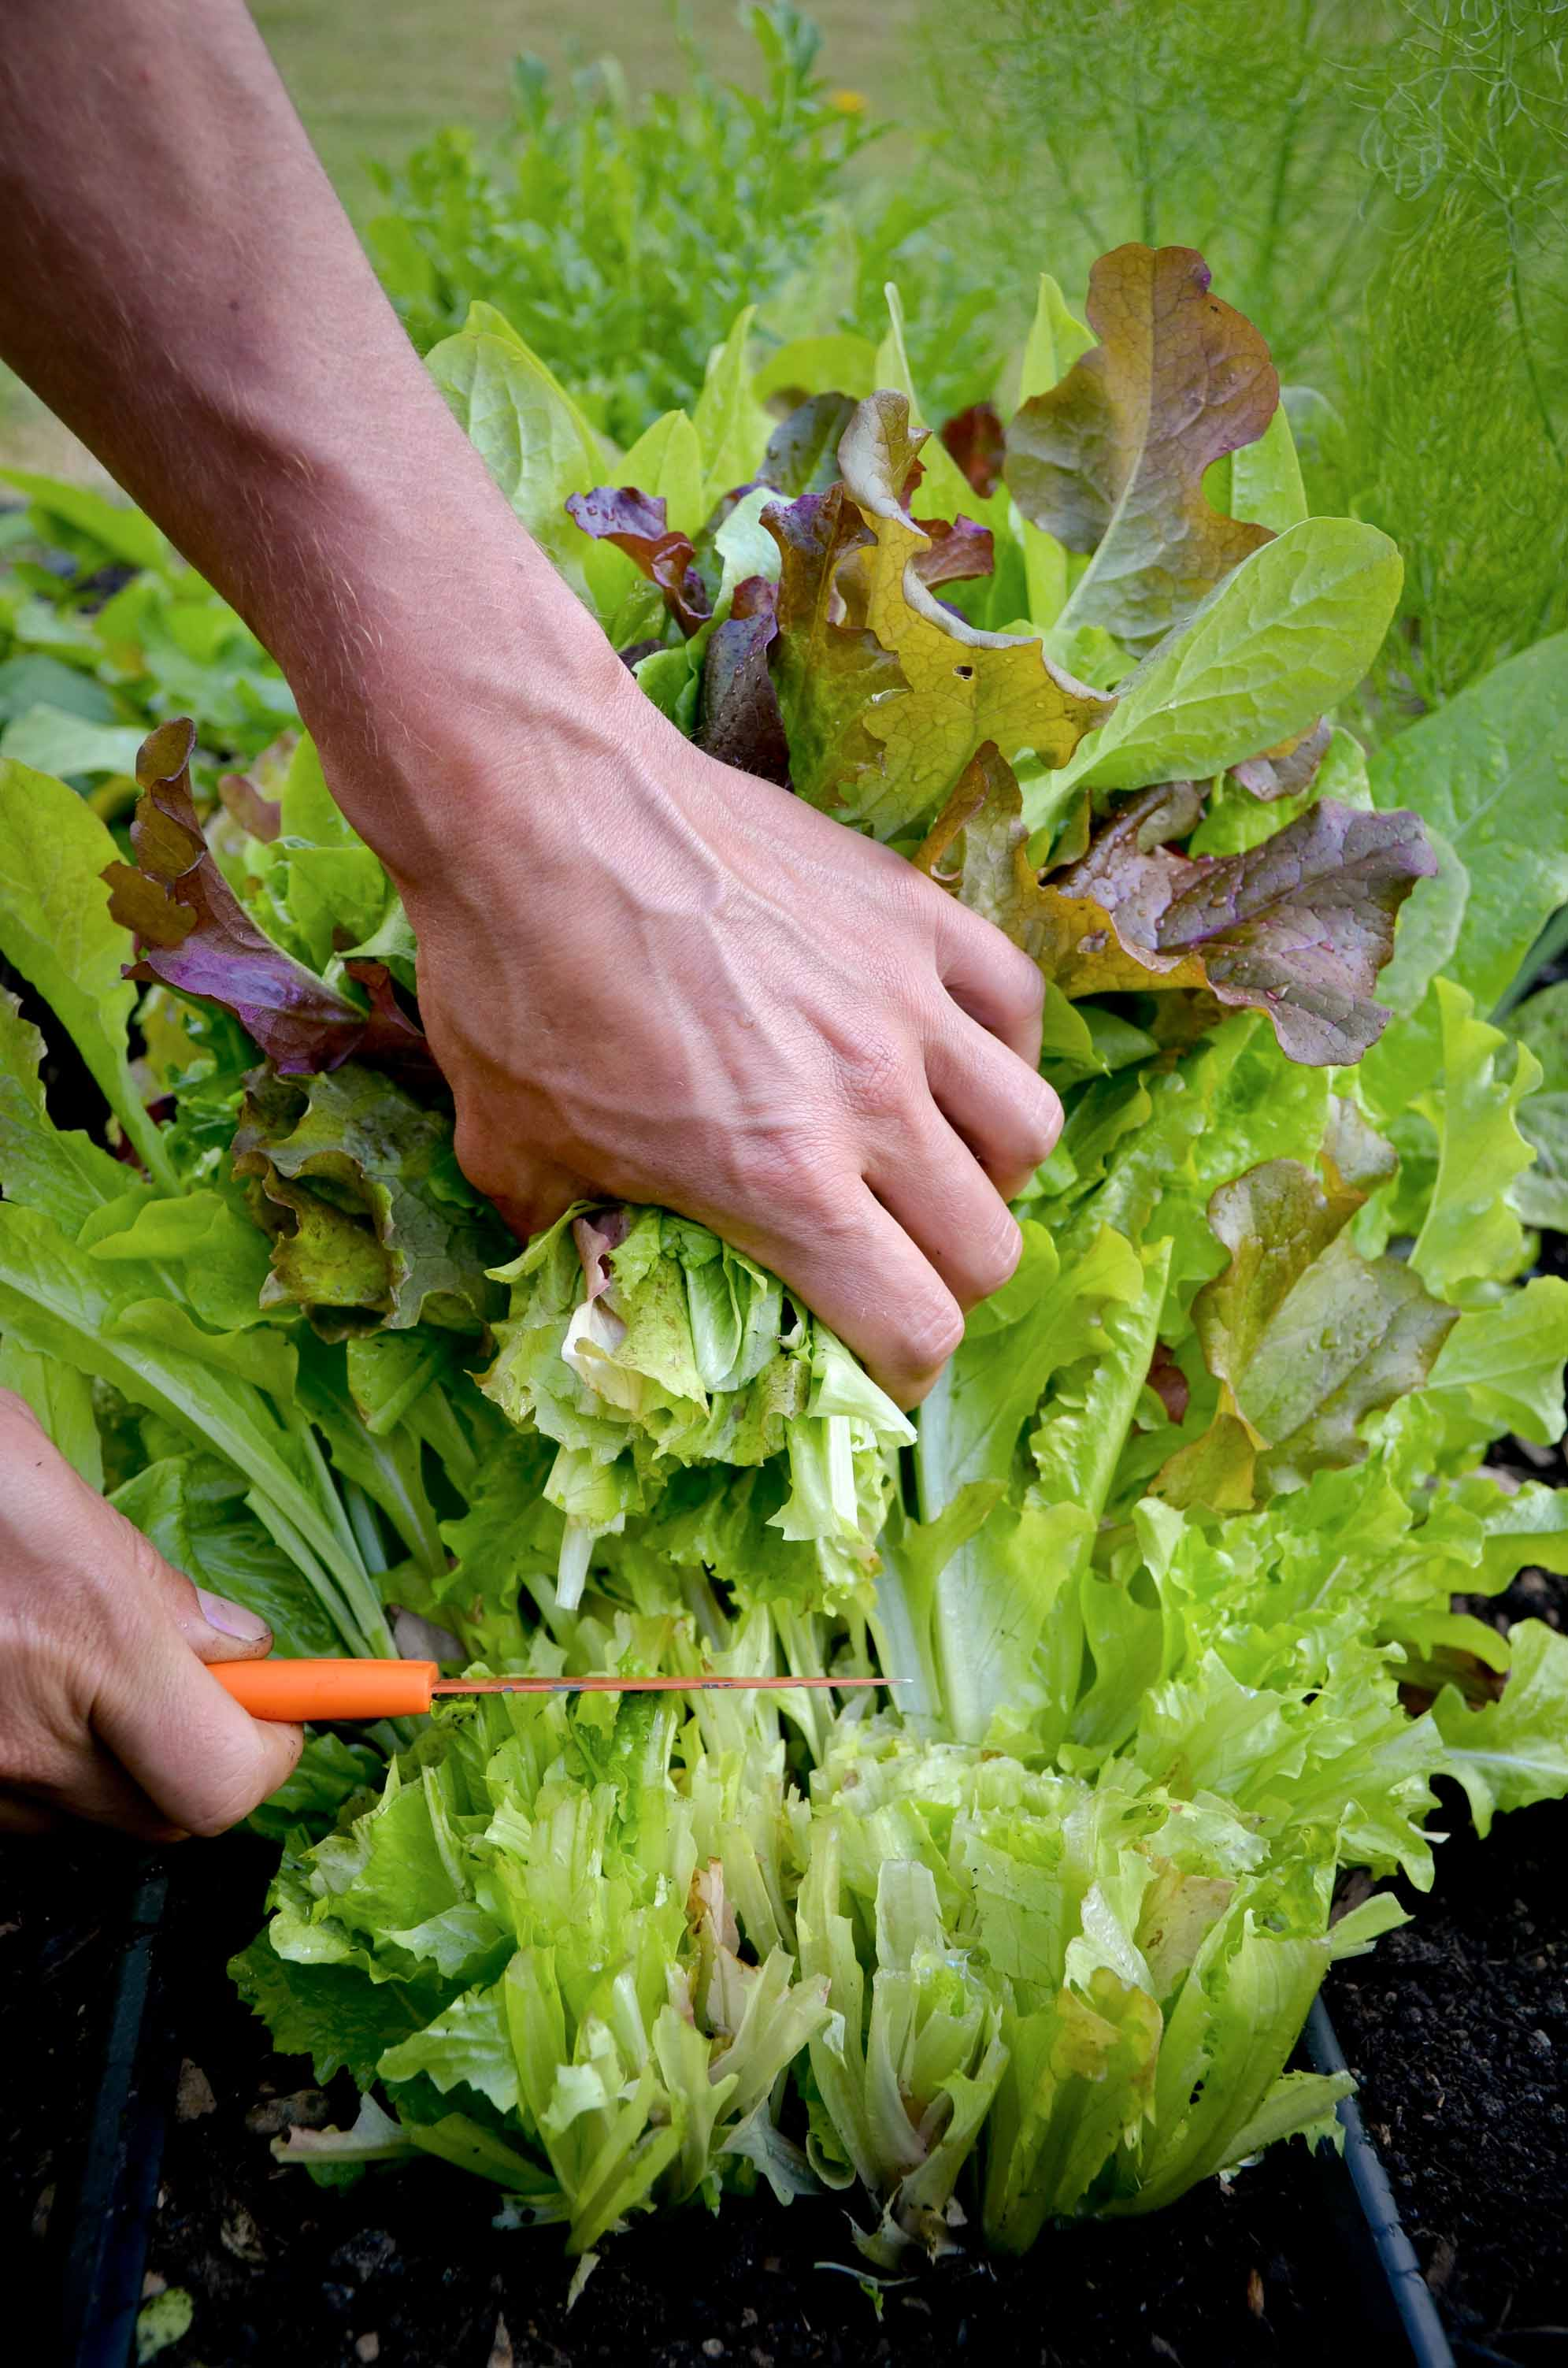 Salad Greens_Harvesting lettuce mix.jpg